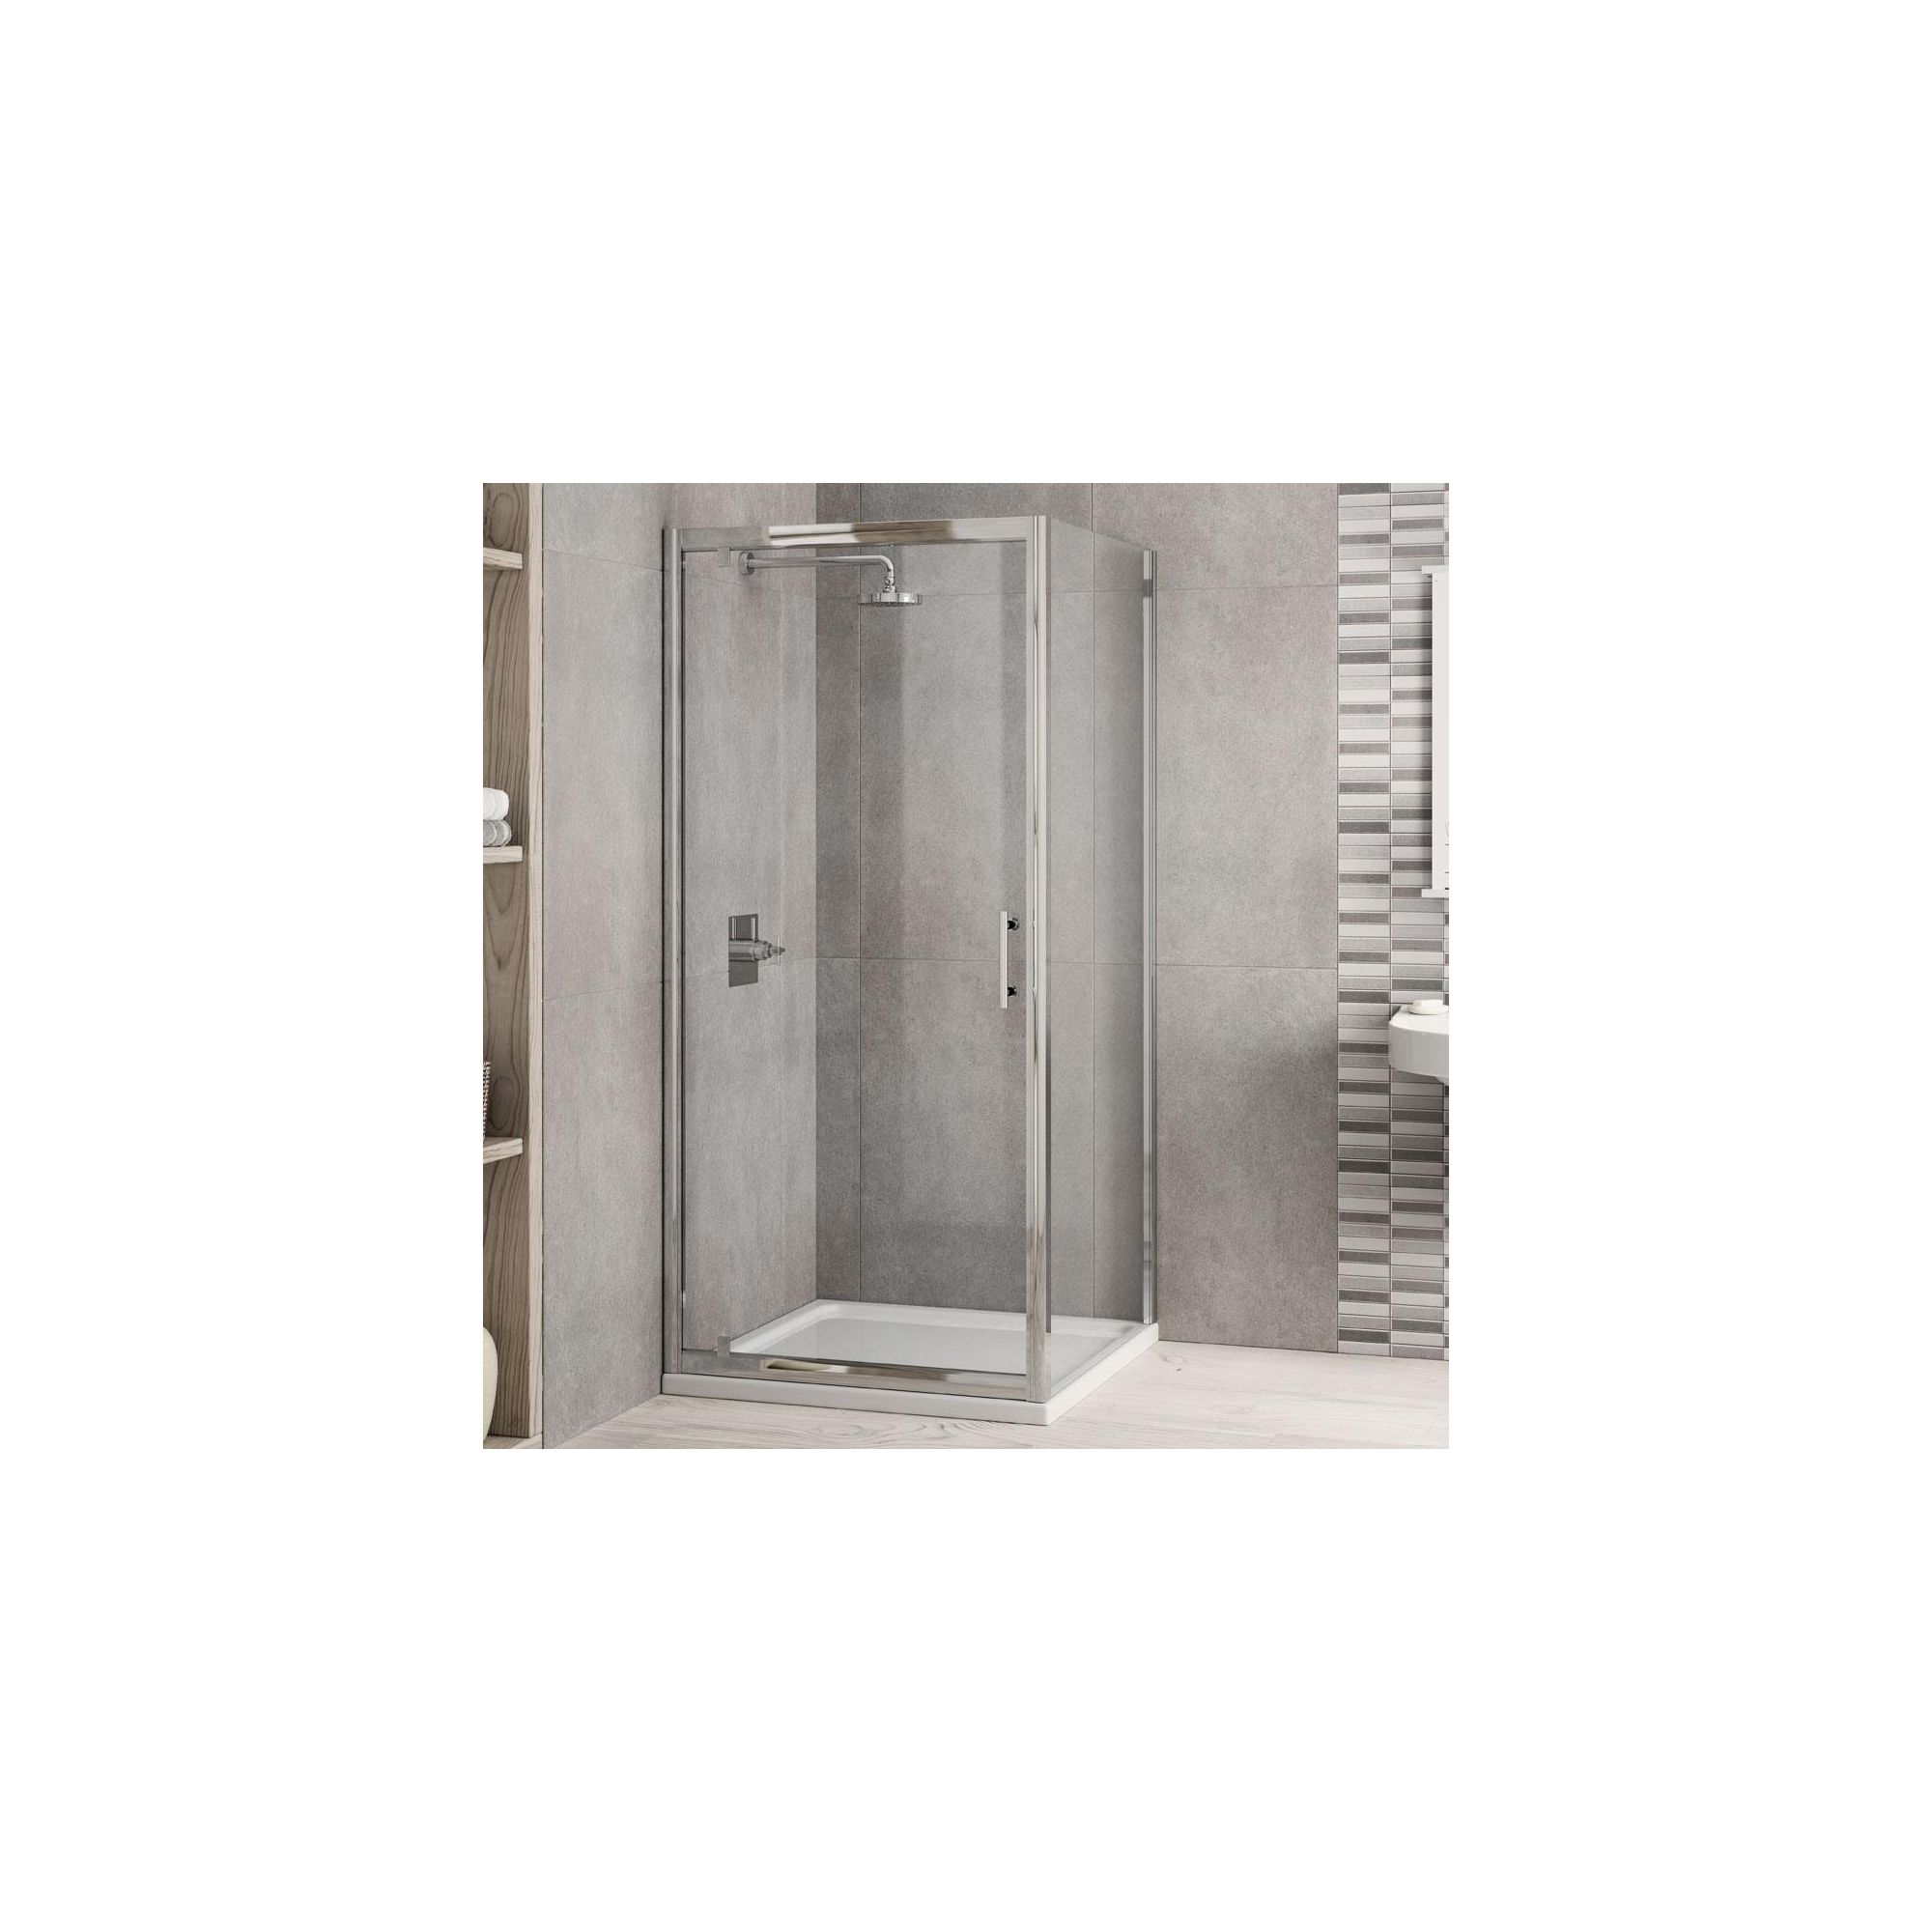 Elemis Inspire Pivot Door Shower Enclosure, 800mm x 800mm, 6mm Glass, Low Profile Tray at Tesco Direct